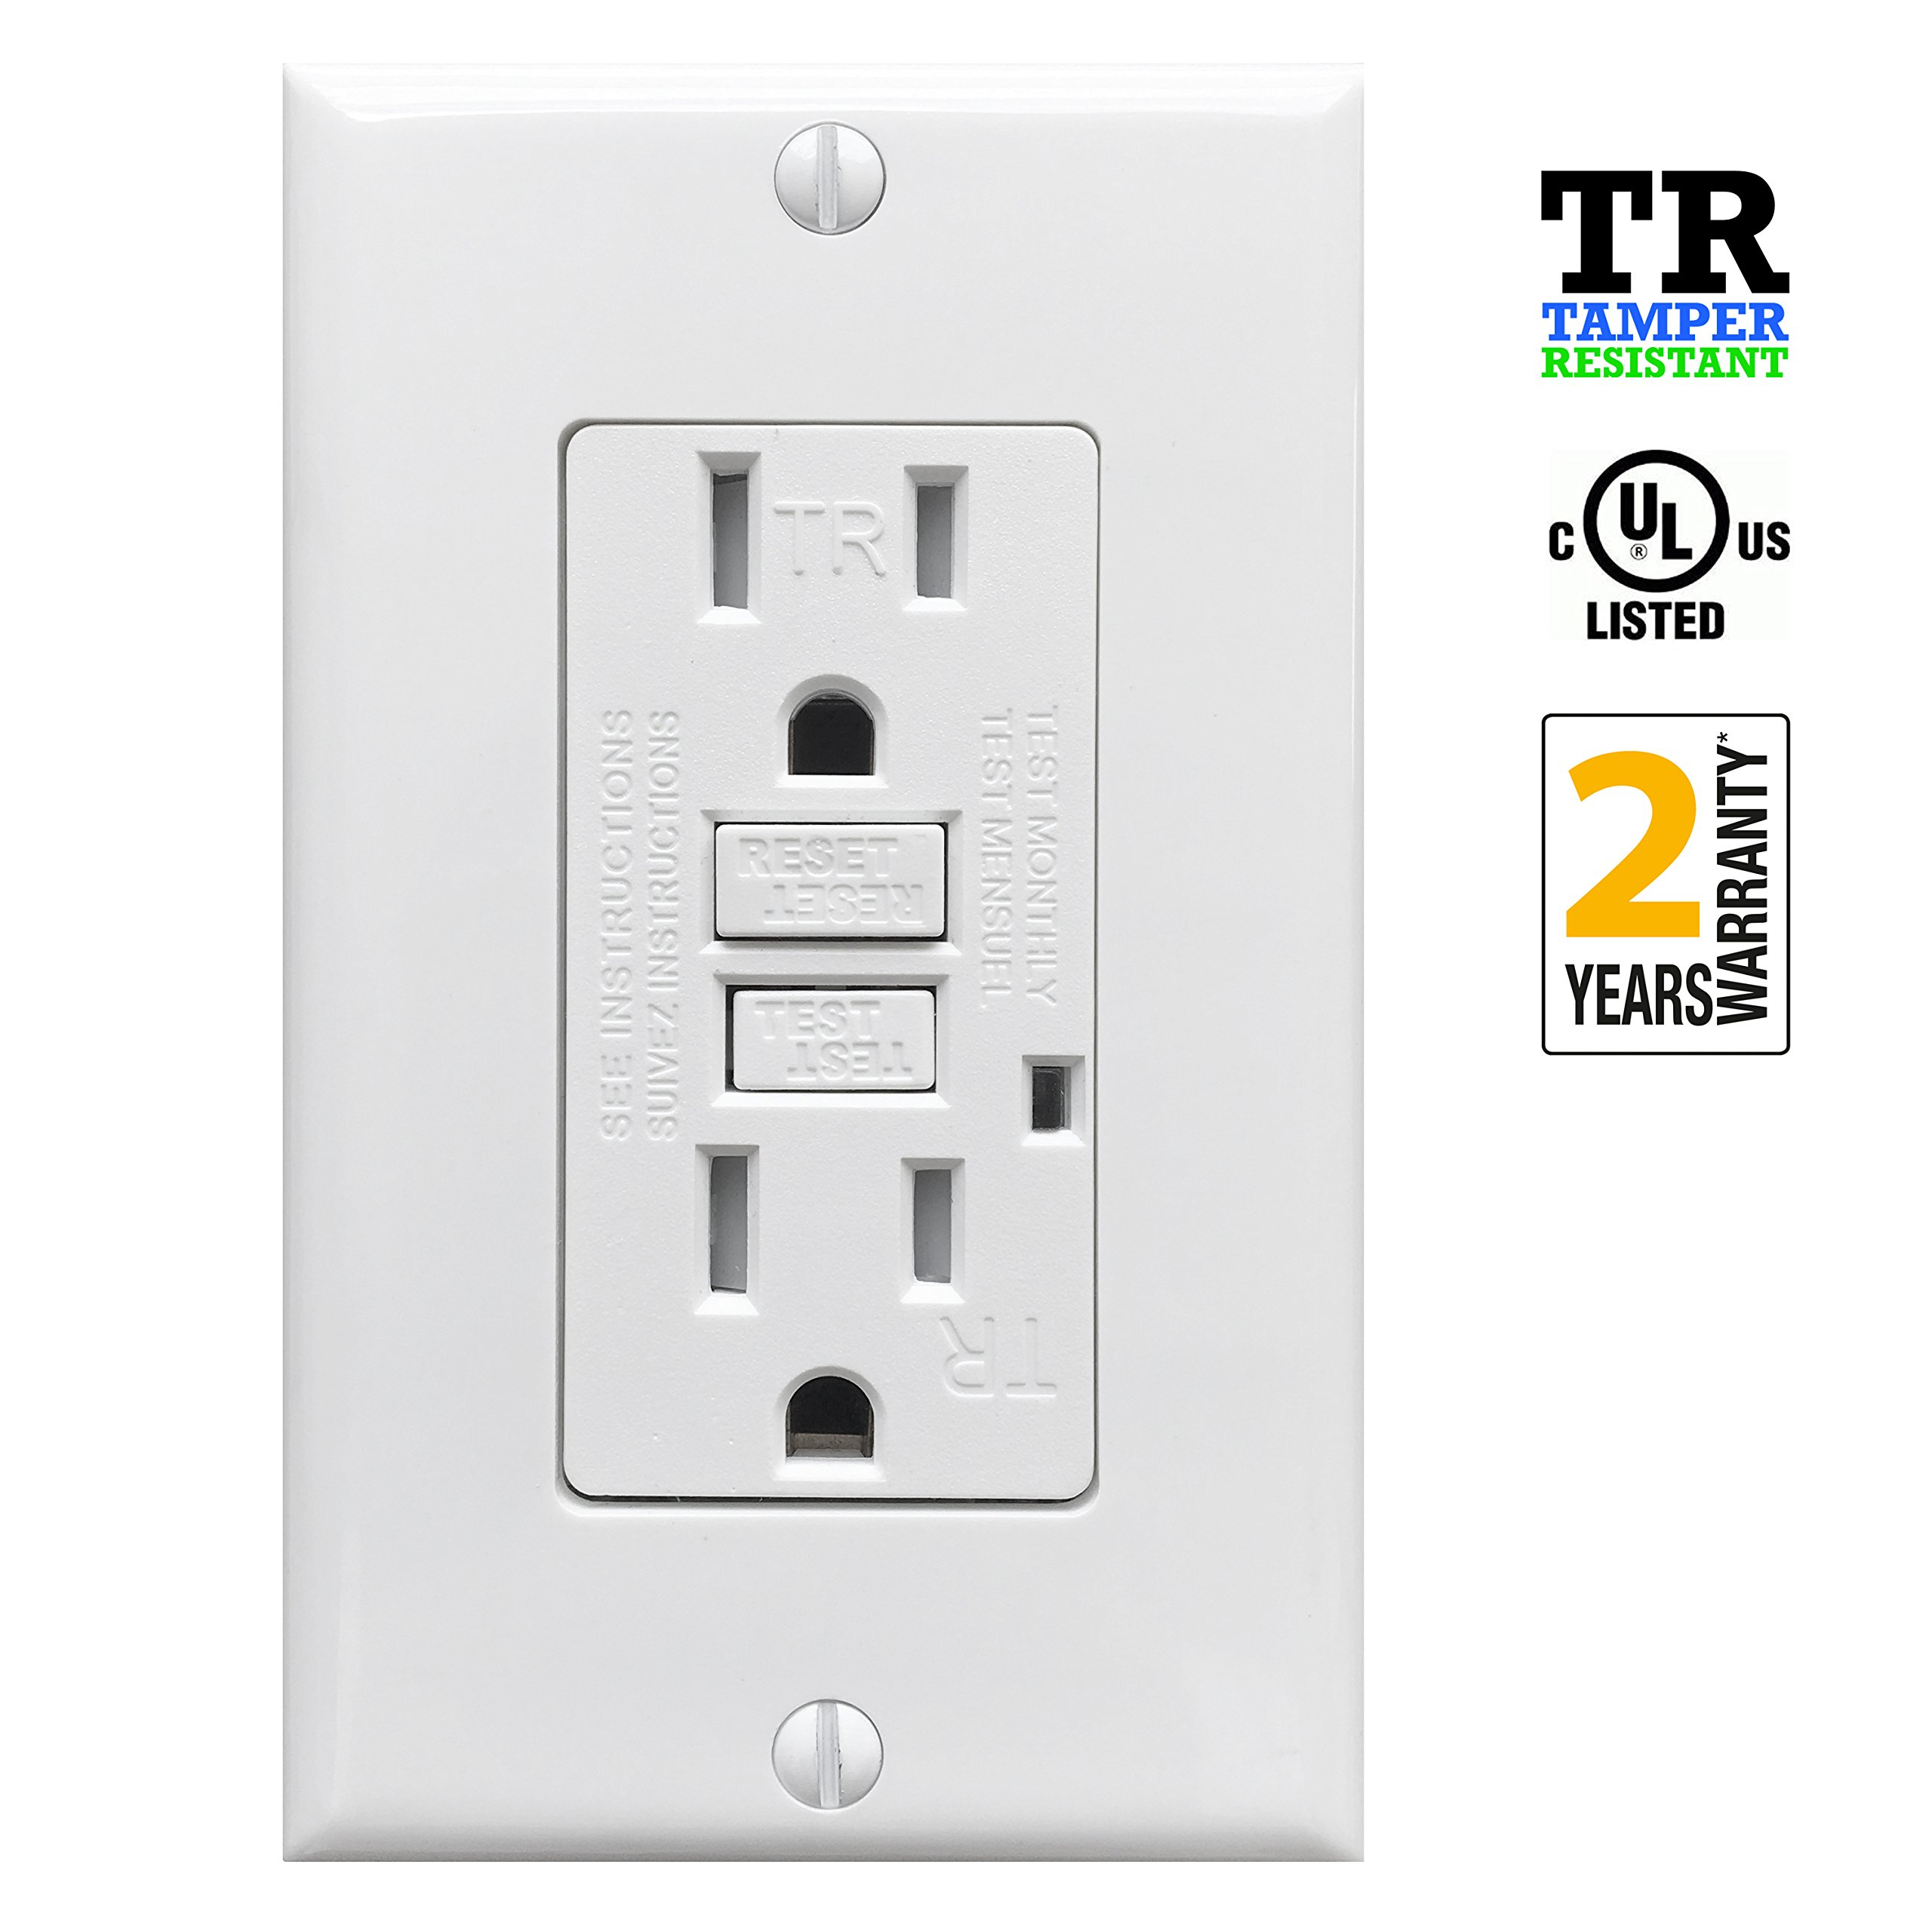 Best Rated In Ground Fault Circuit Interrupter Outlets Helpful How To Add Gfci A Box With One Outlet Controlled By Switch Procuru 15a Tamper Resistant Receptacle Led Indicator Wall Plate And Screws